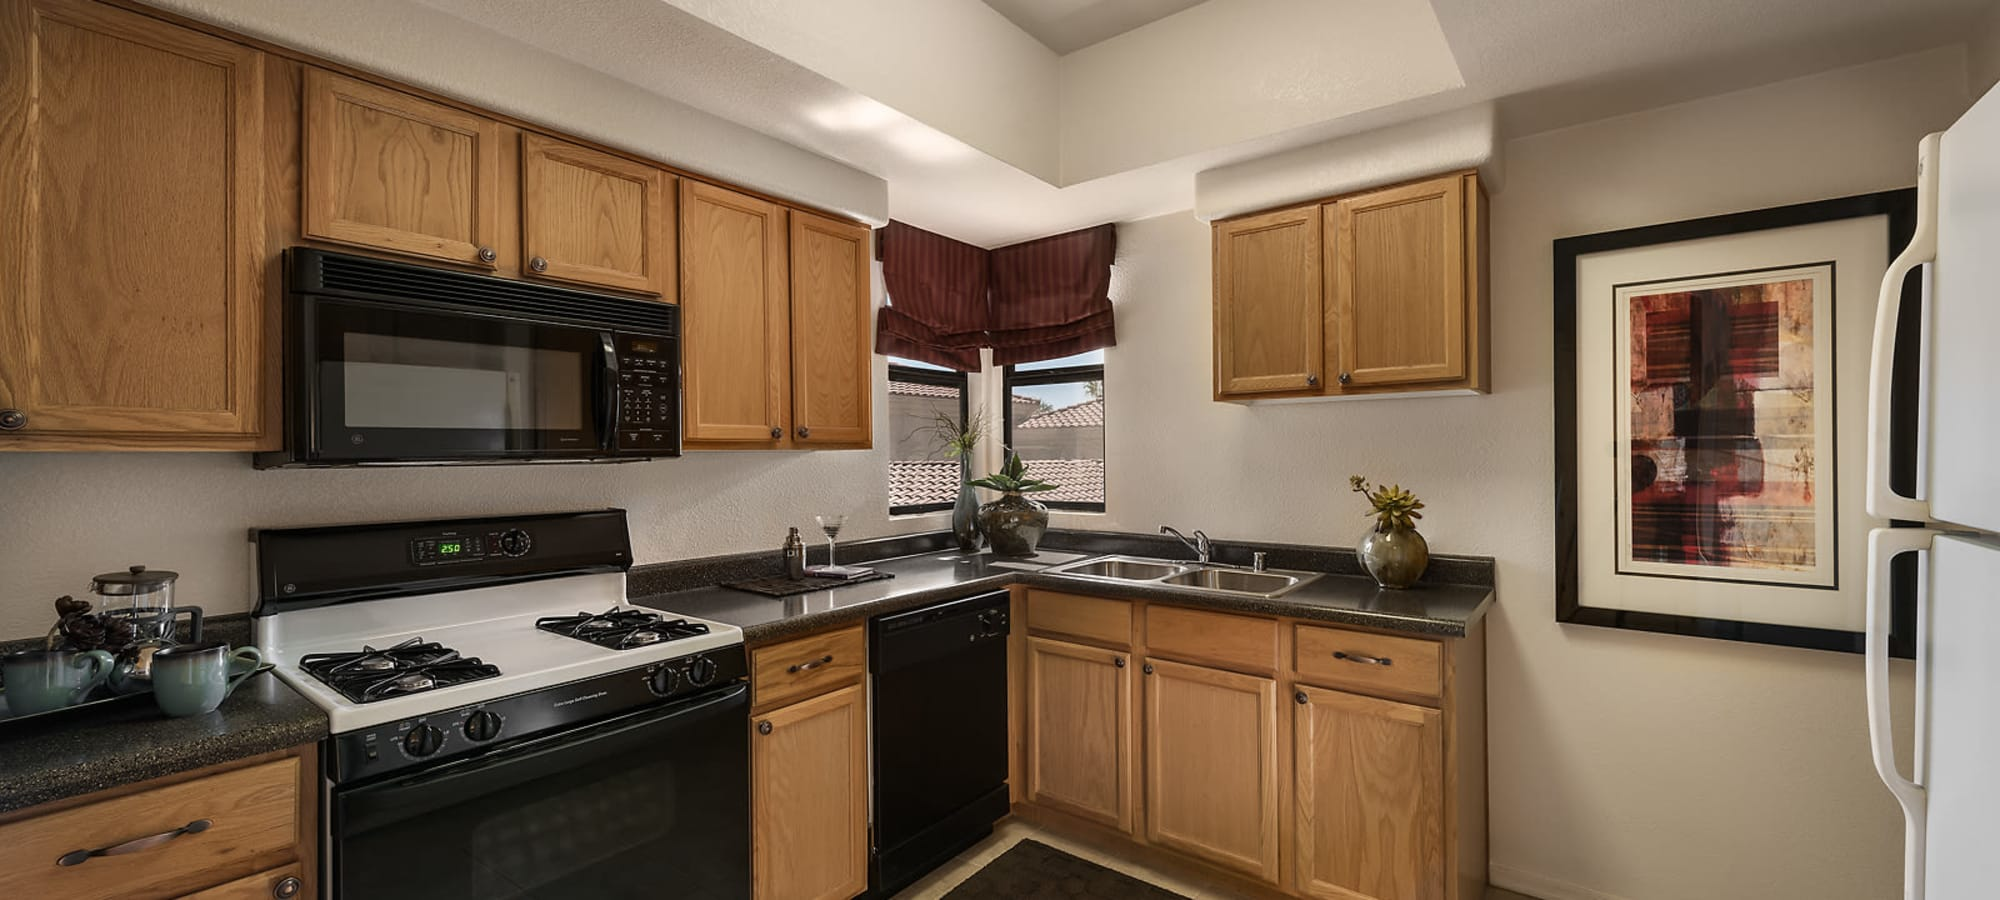 Large kitchen with windows at San Cervantes in Chandler, Arizona